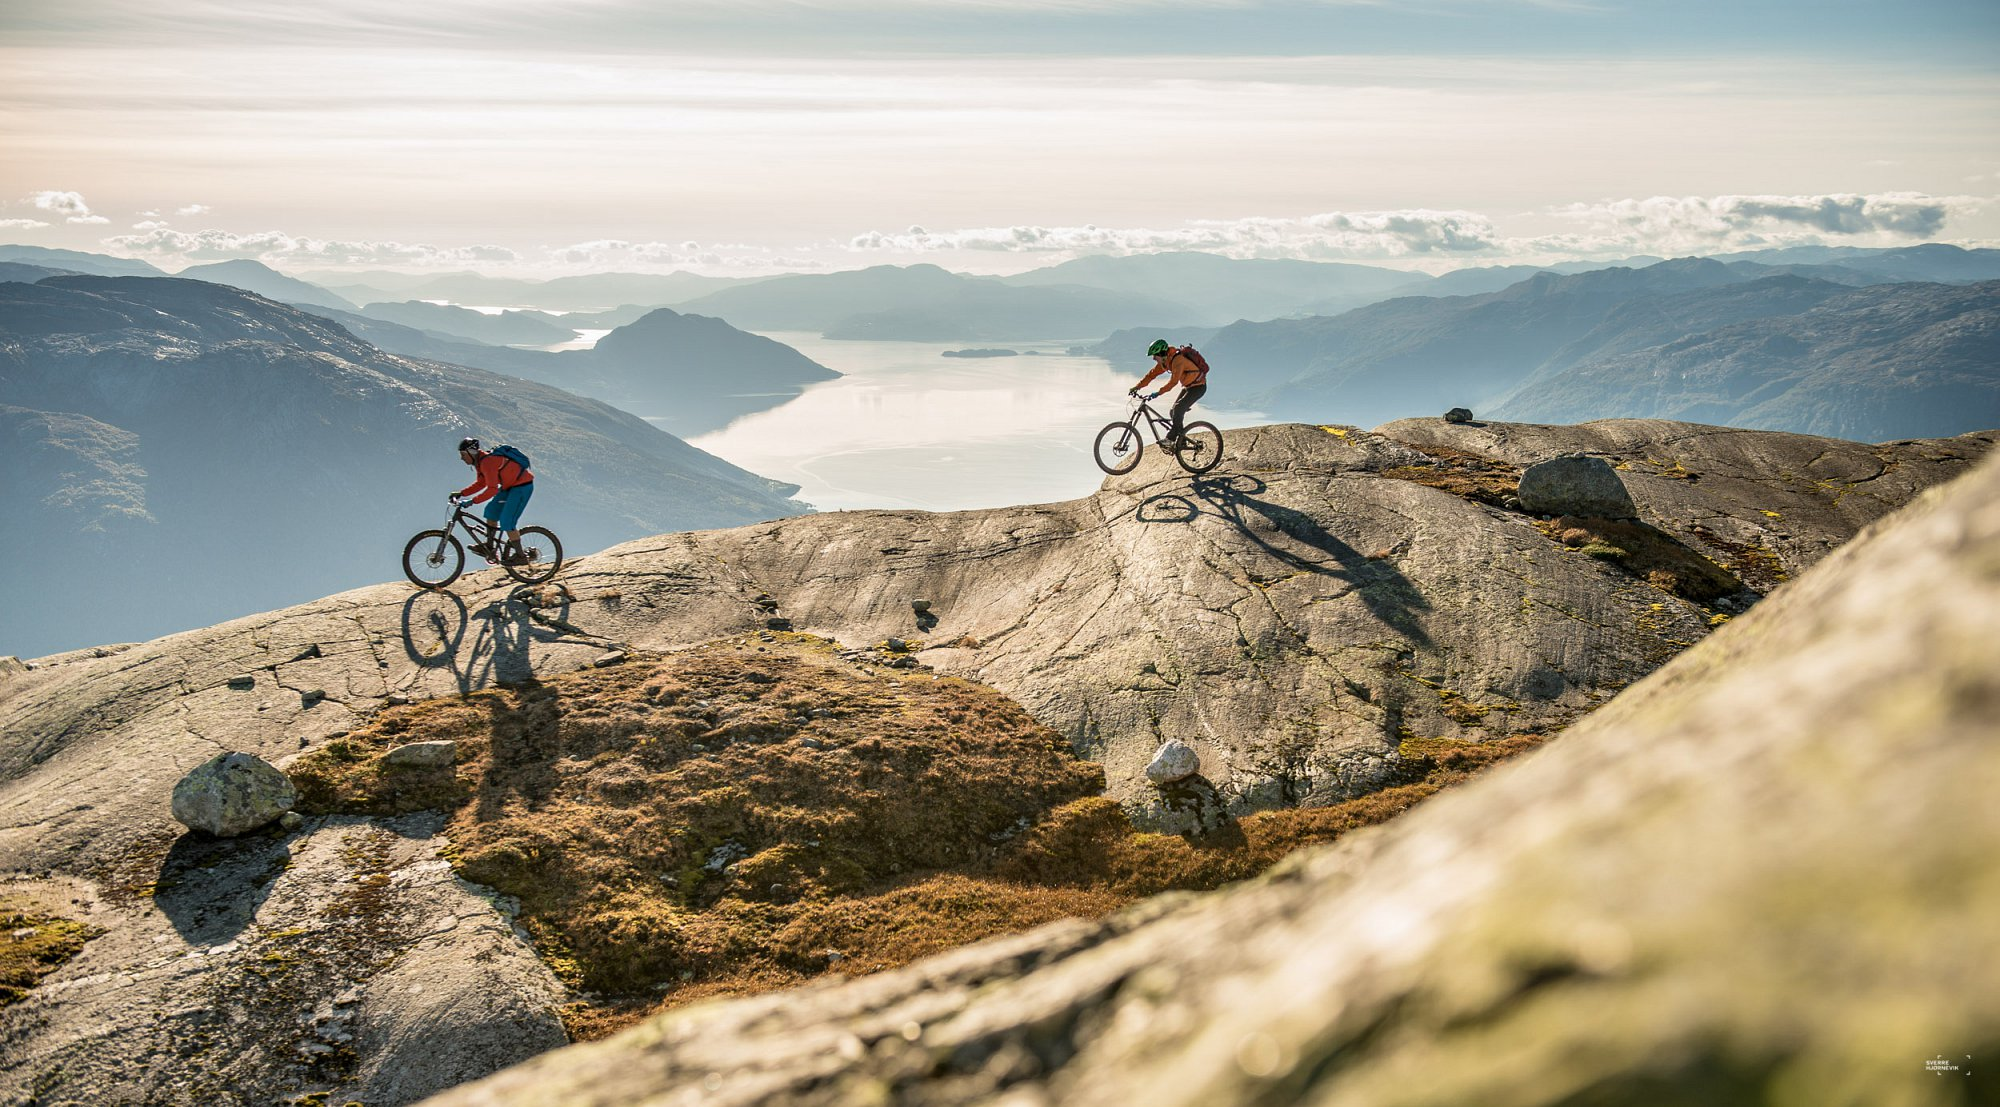 Biking with a view at Oksen/Hardangerfjord. Private project.